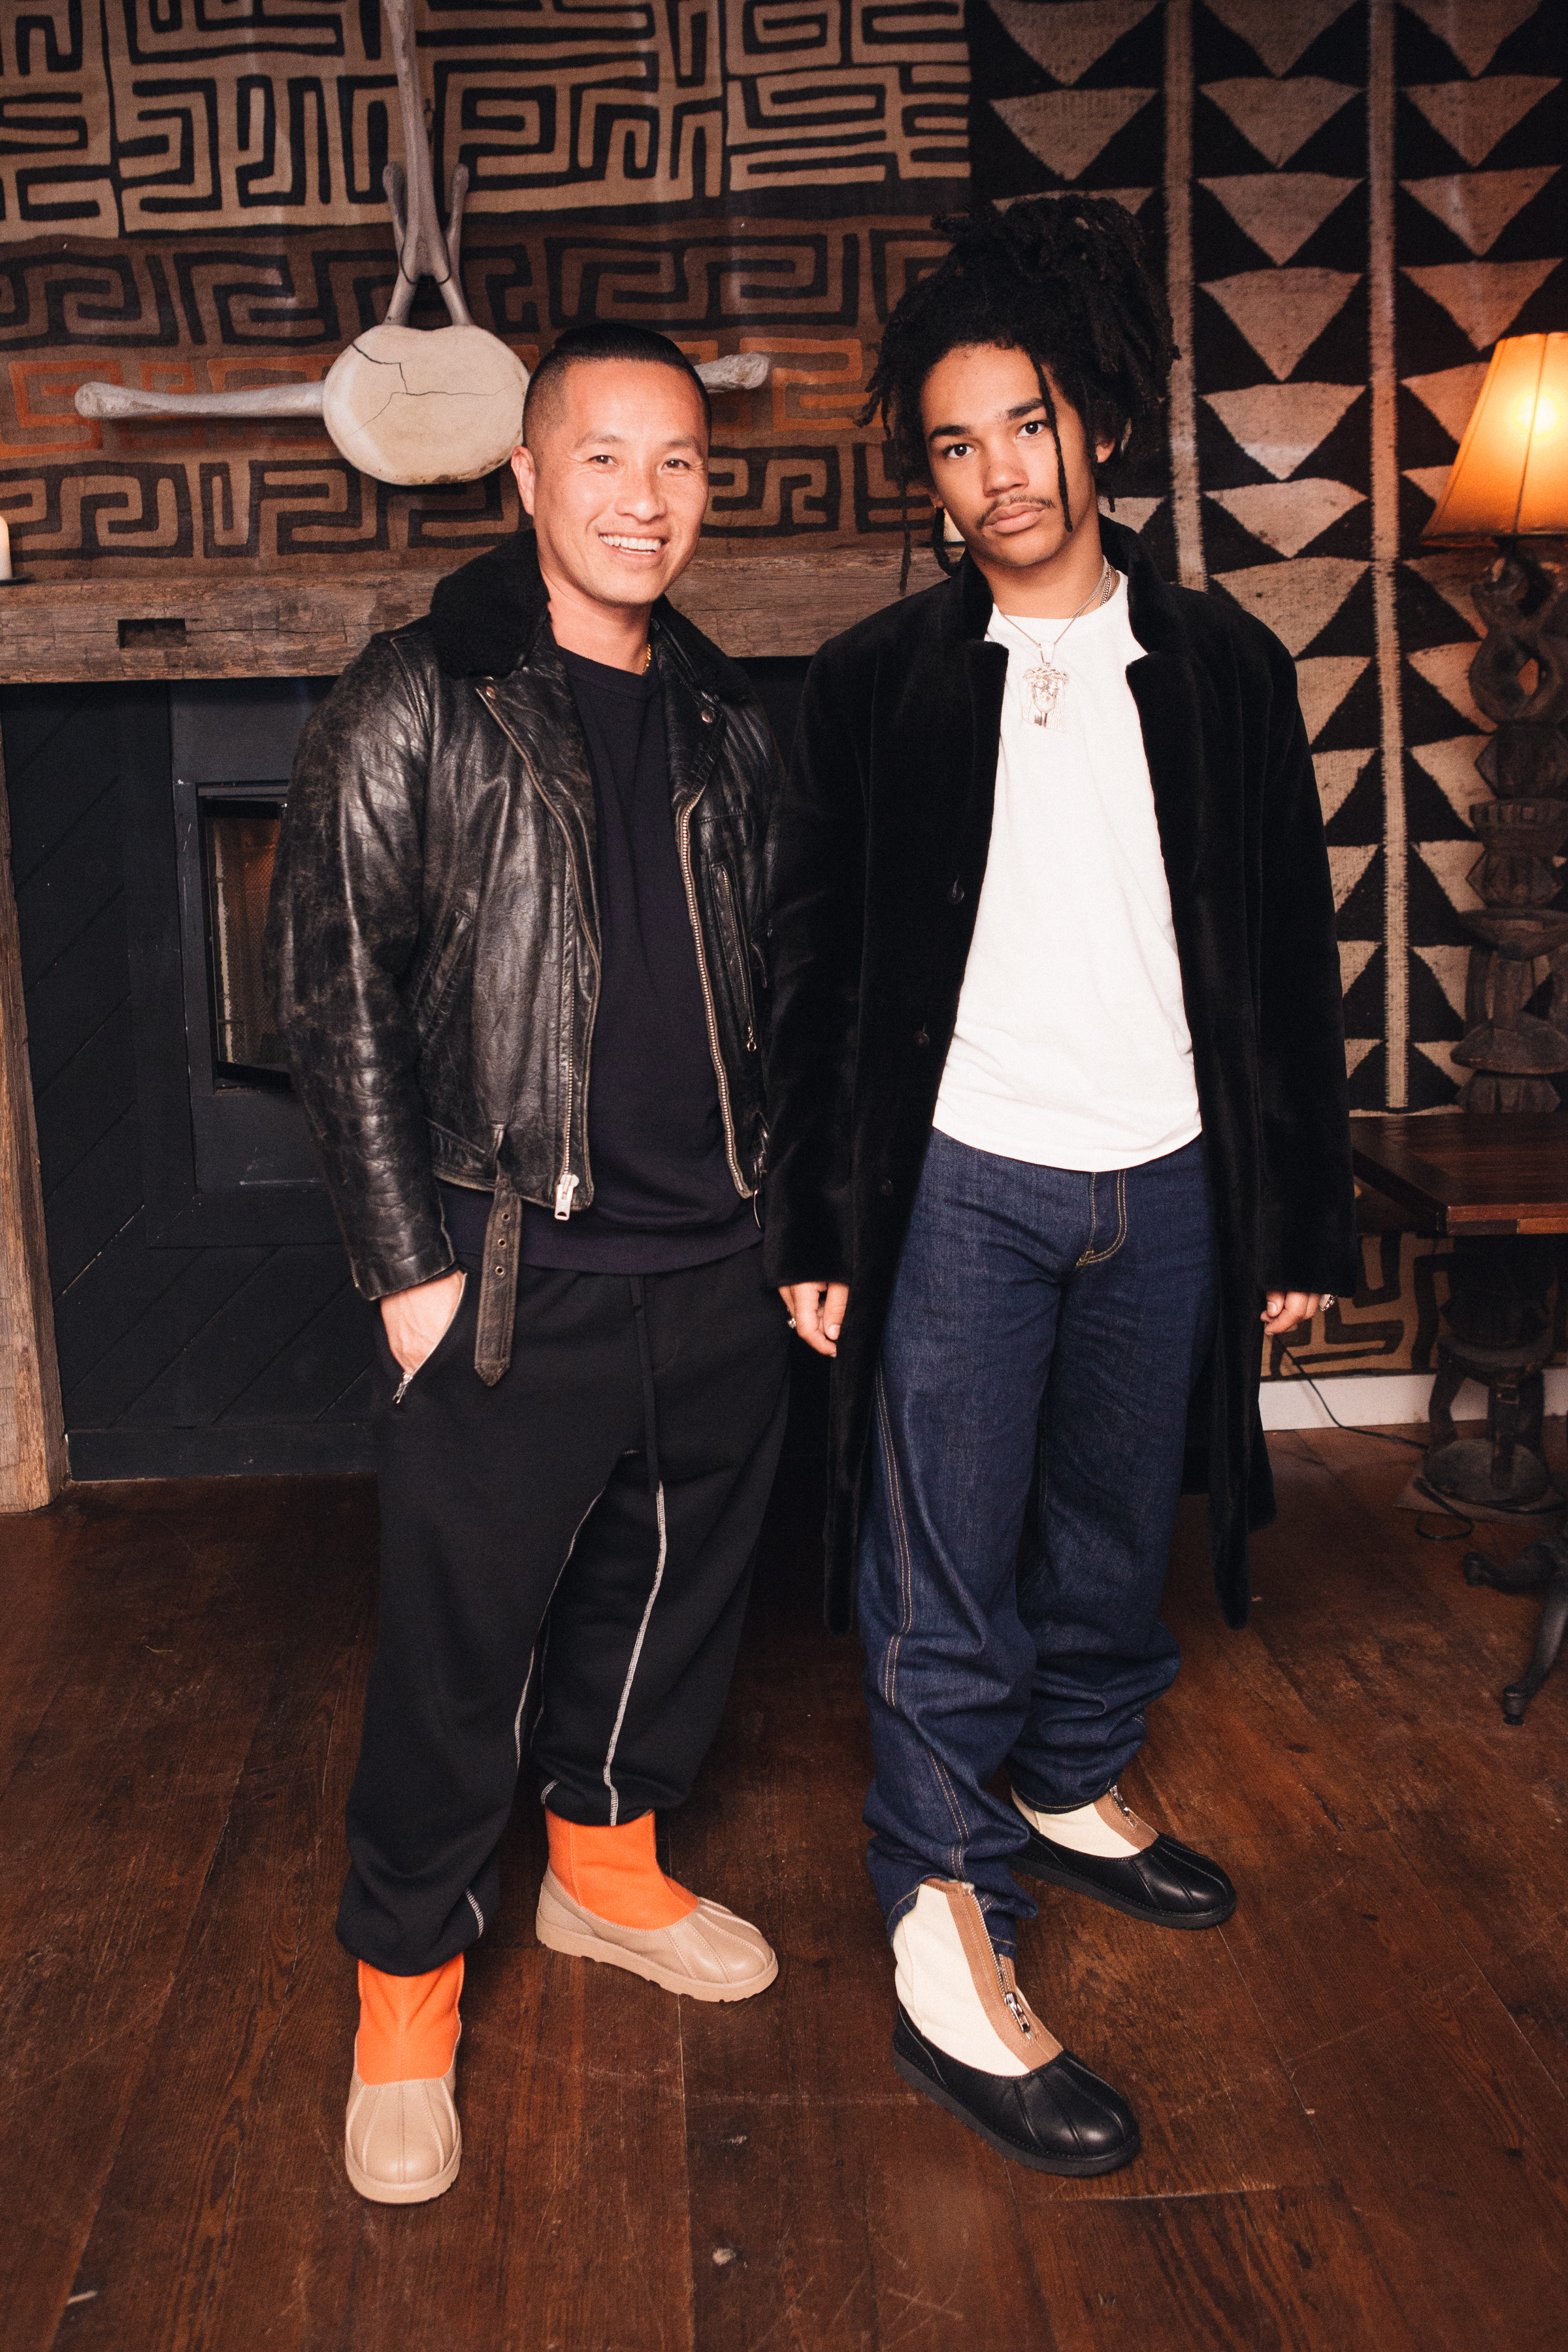 e75da6320d3 UGG x 3.1 Phillip Lim Collaboration Now Available | Business Wire